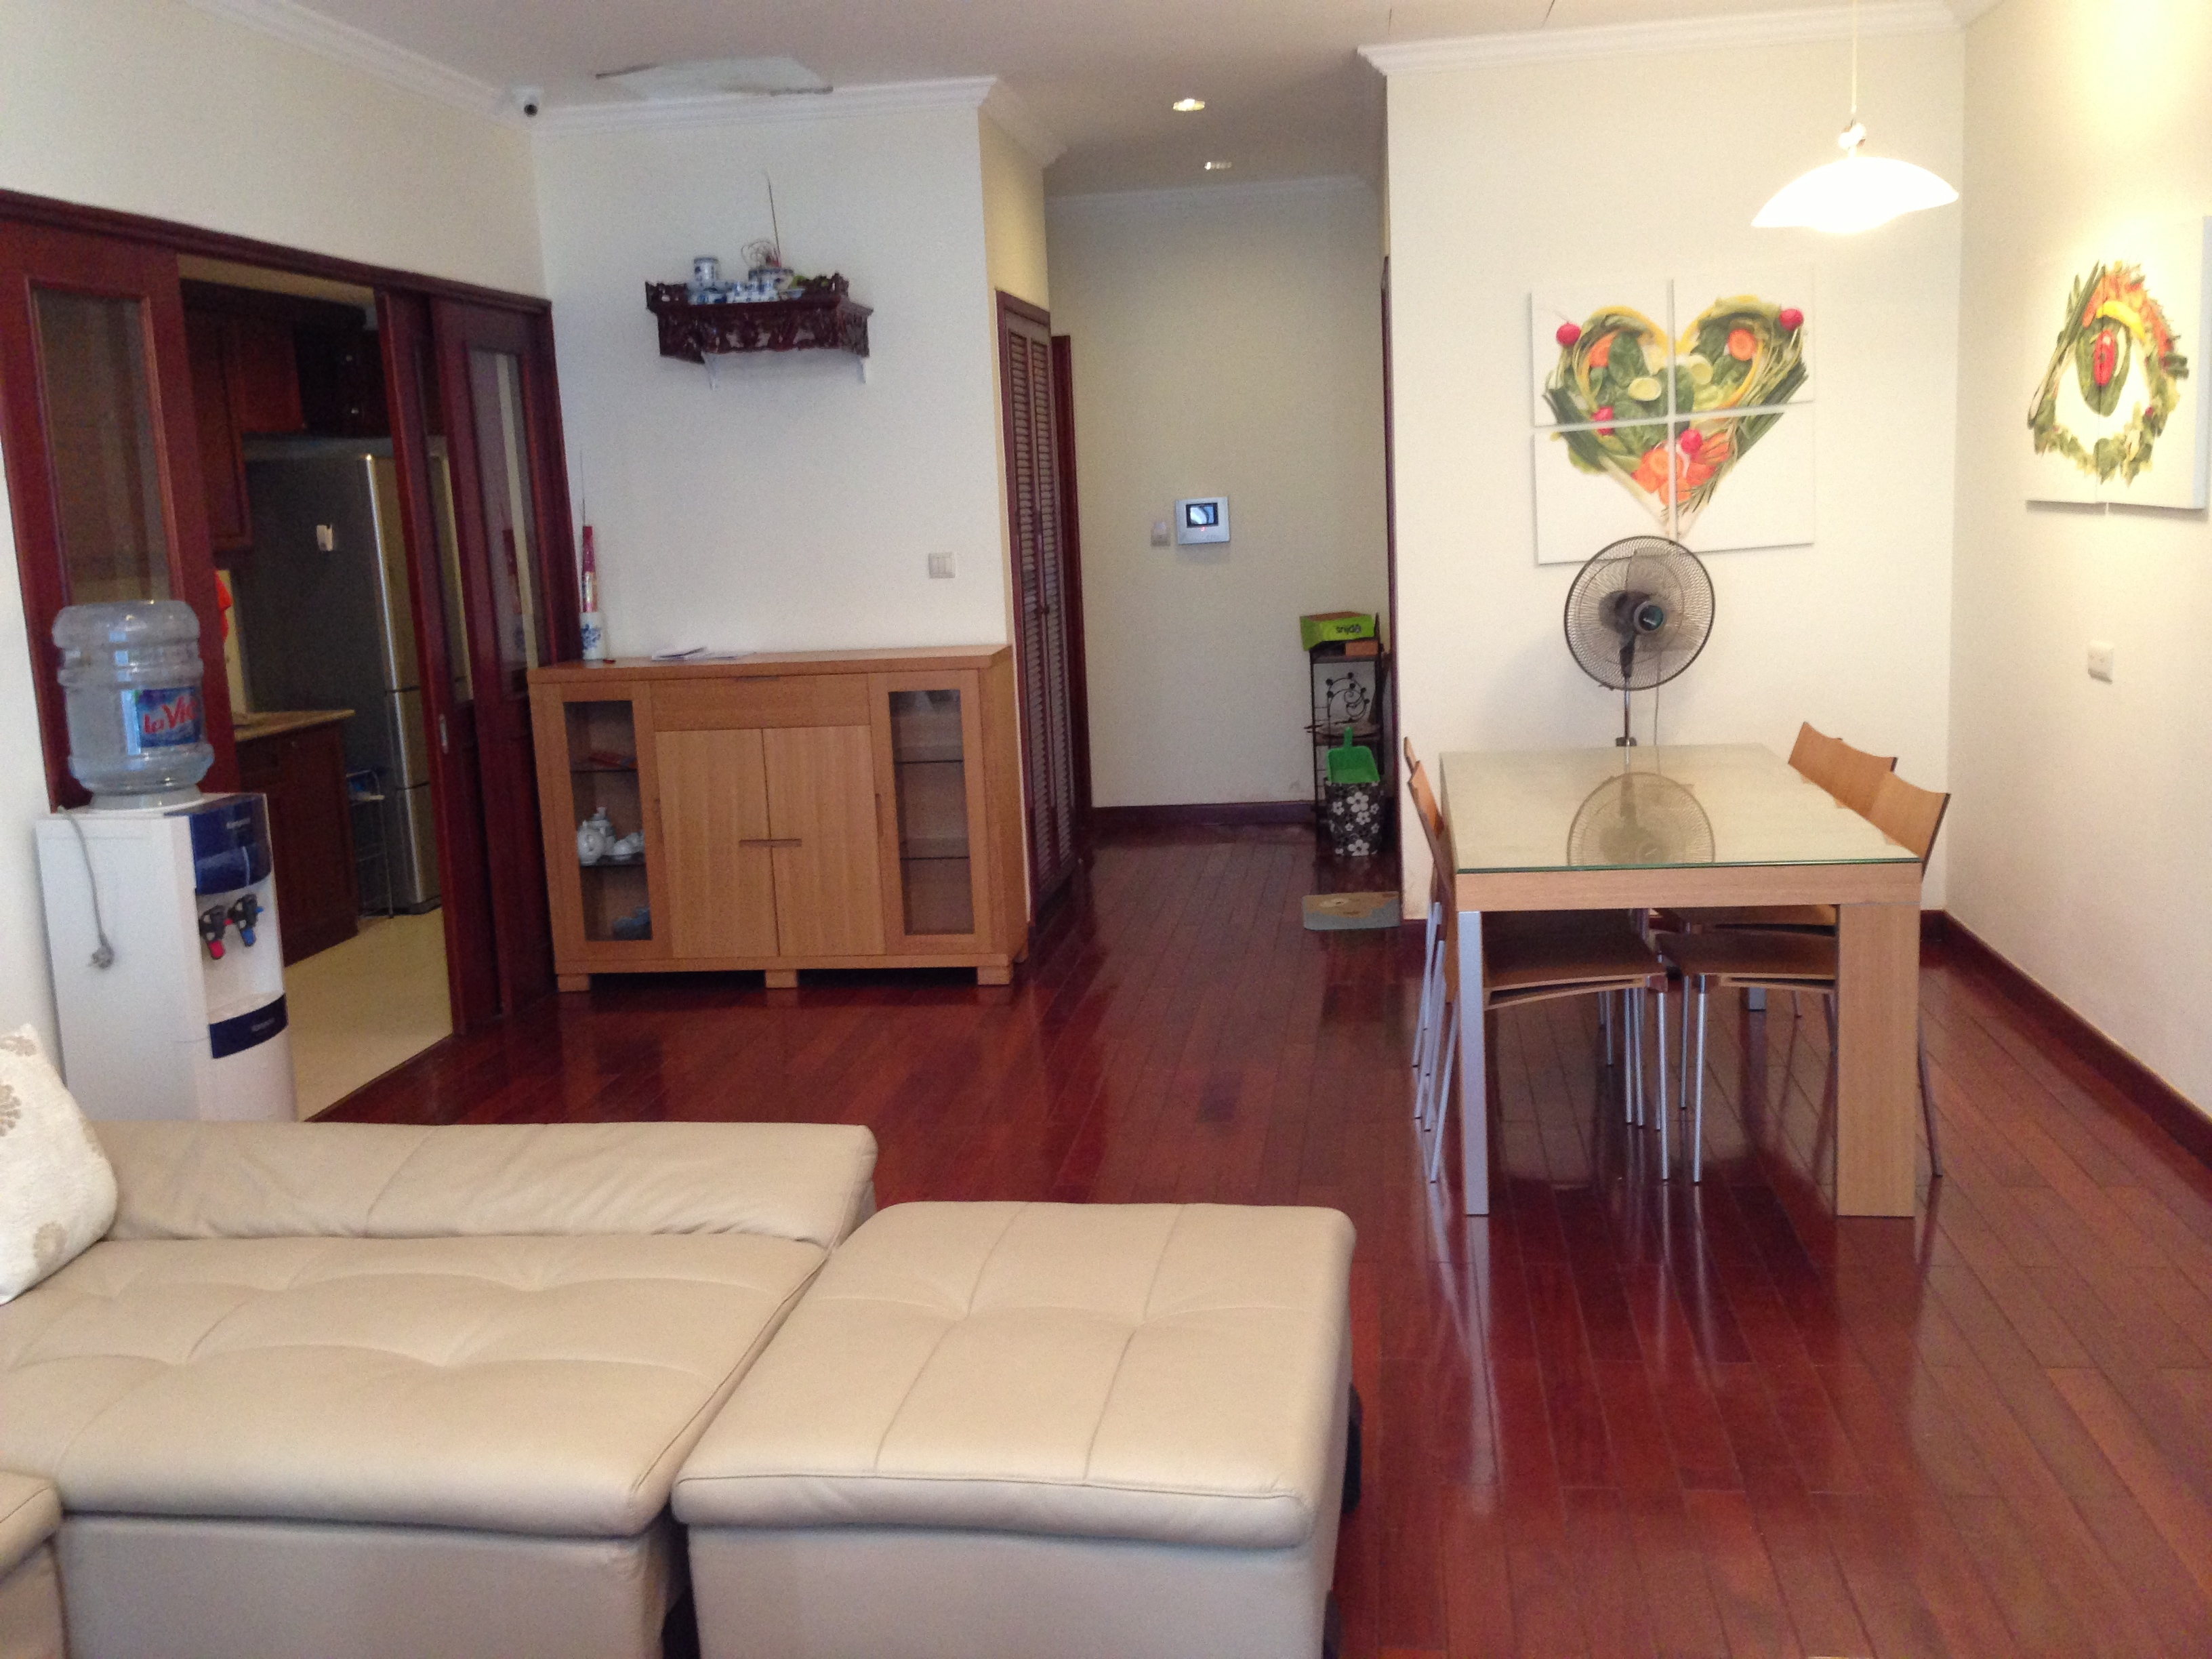 Bright apartment for lease in Vincom, 141 Mai Hac De street